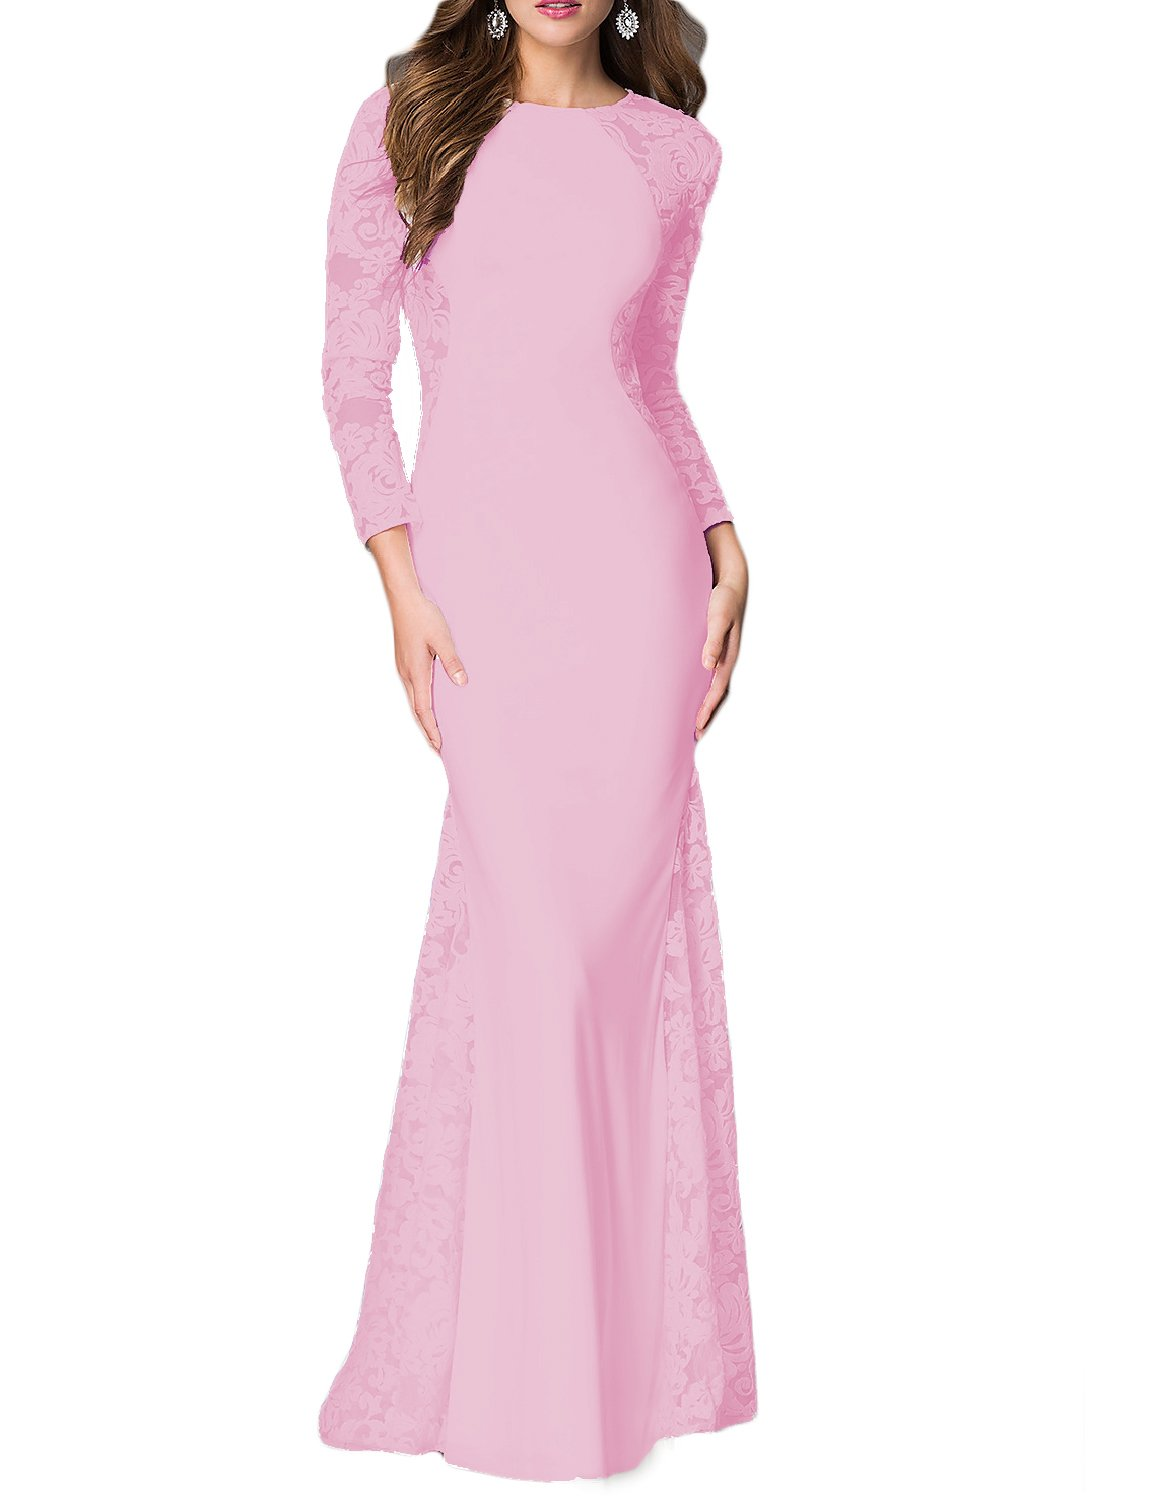 YSMei Womens Long Mermaid Evening Dresses with Sleeves Prom Formal Gowns YEV143